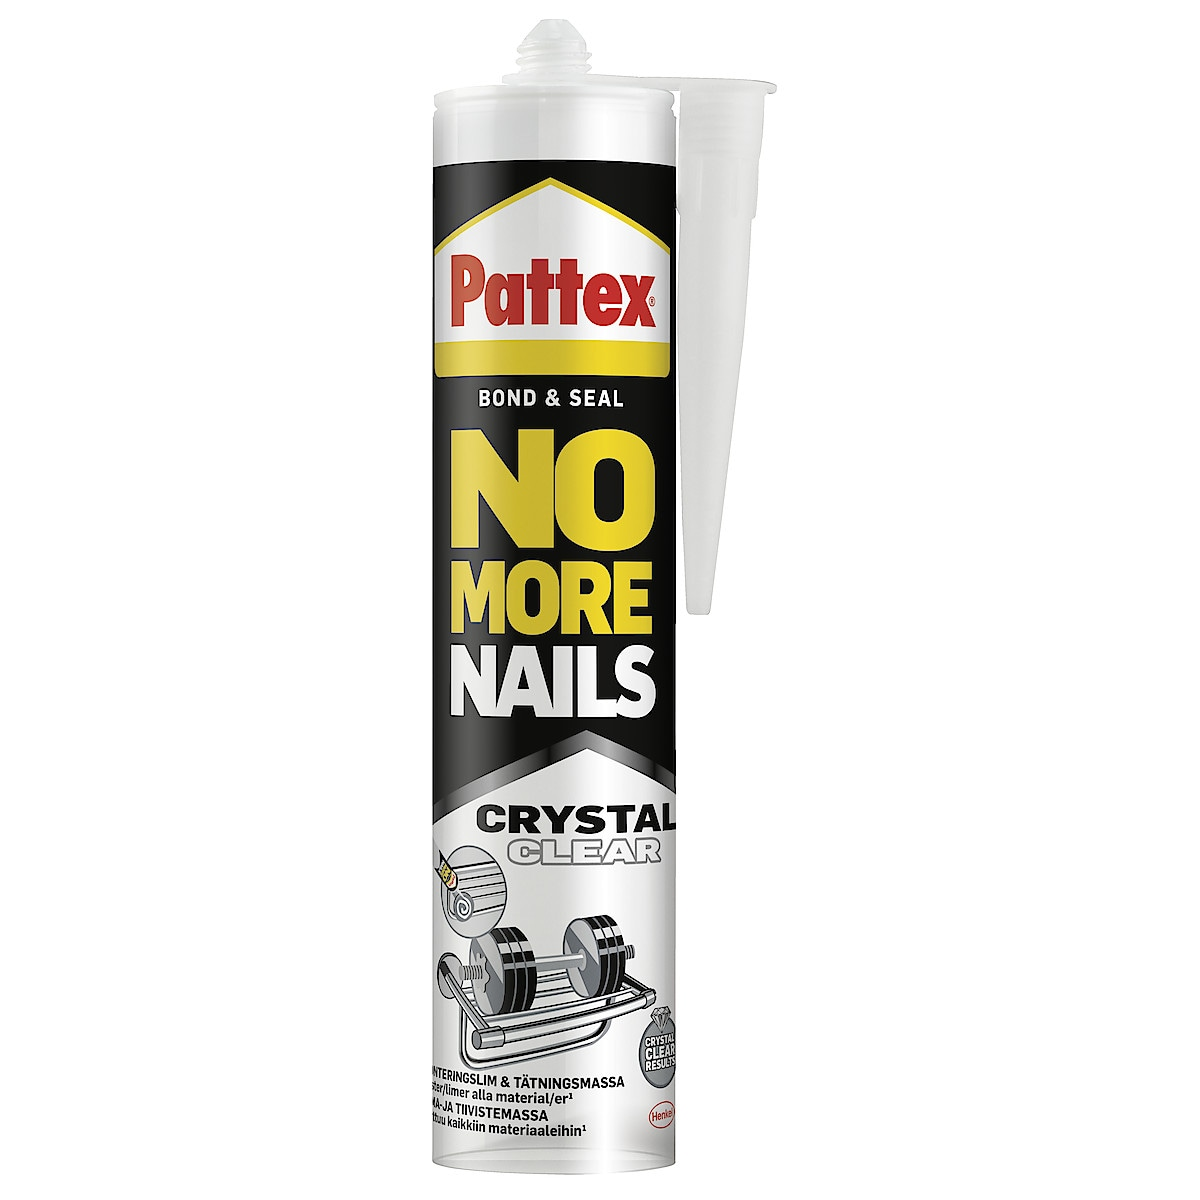 Pattex Montagelim och fogmassa Crystal Clear 280 ml